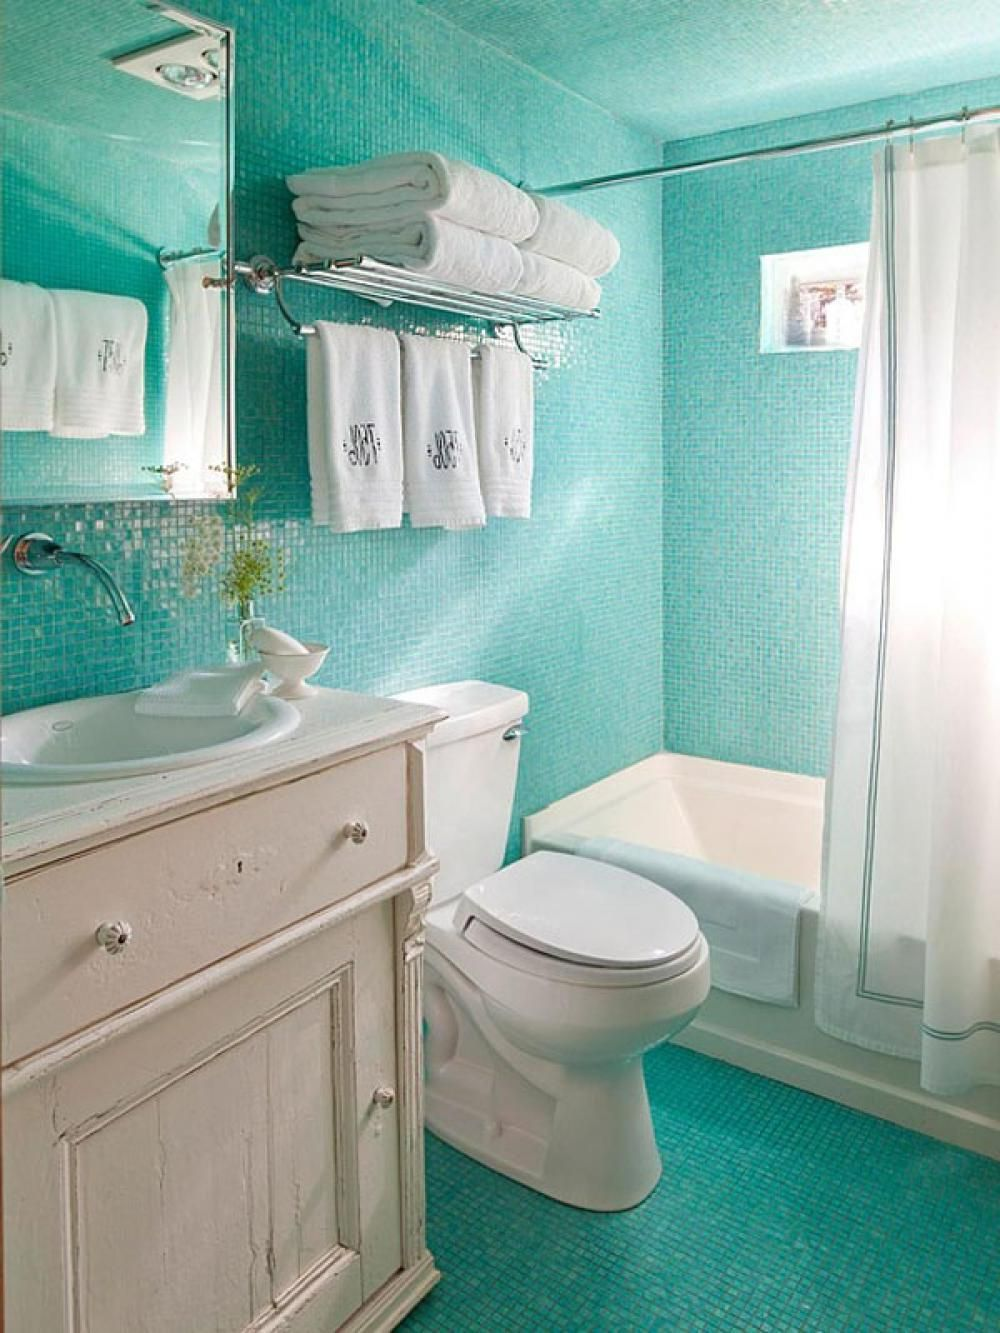 Bathroom Enchanting Green Blue Bathroom Decoration Using Turquoise Mosaic Tile Bathroom Wall Along With Birch Wood 3 Drawer Bathroom Vanity And Plain